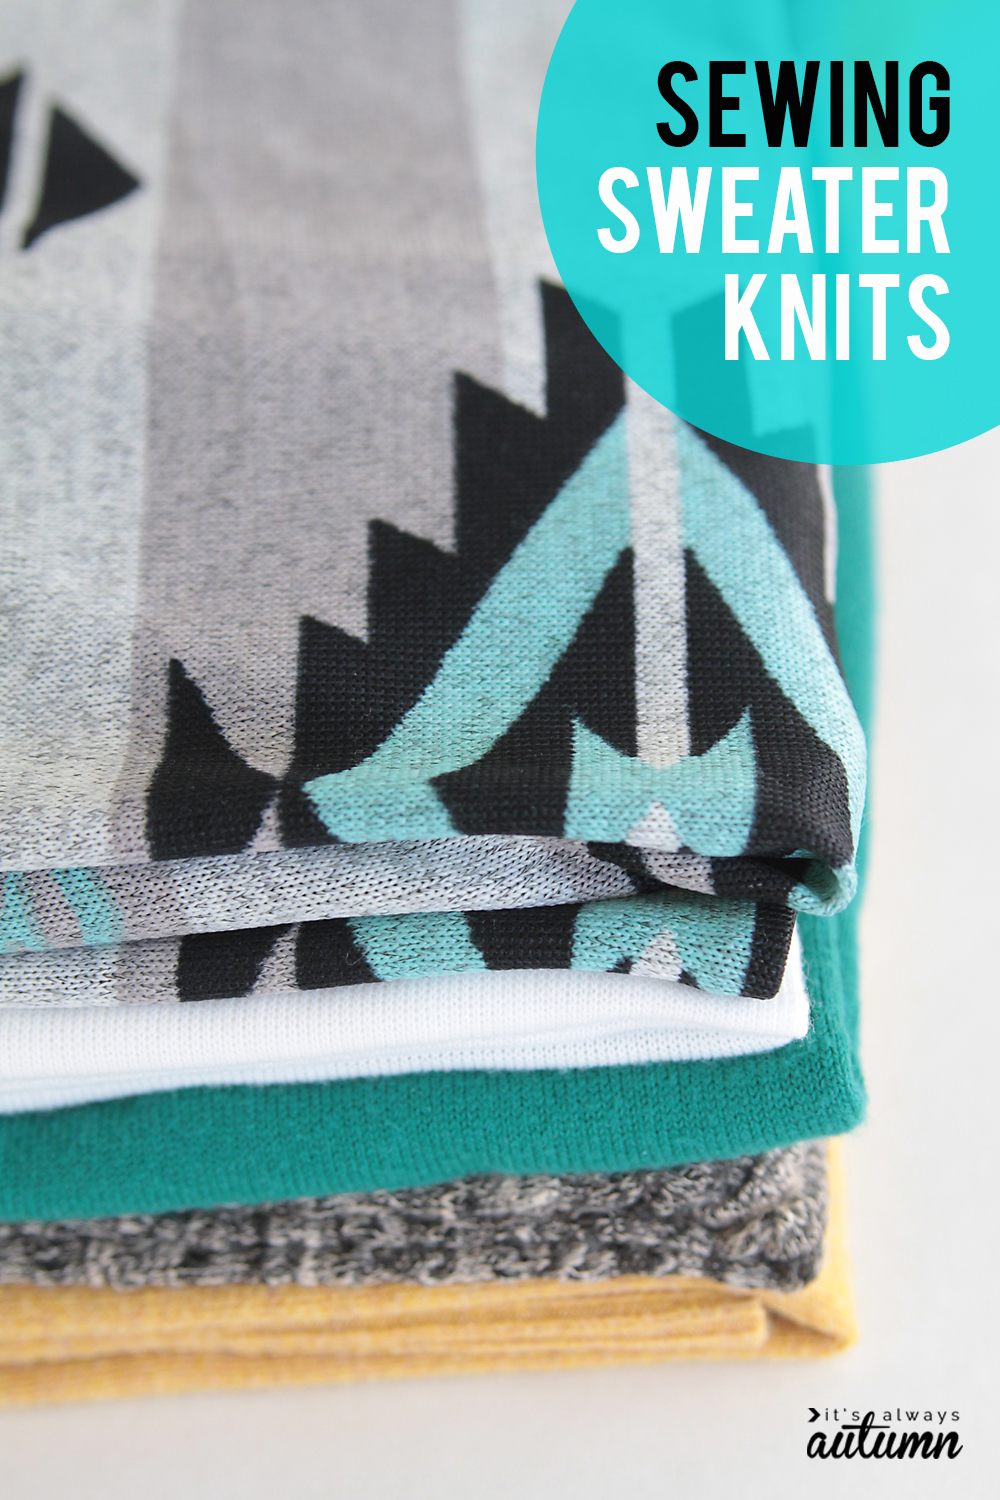 Learn how to sew with sweater knits! Click through for tips and tricks.